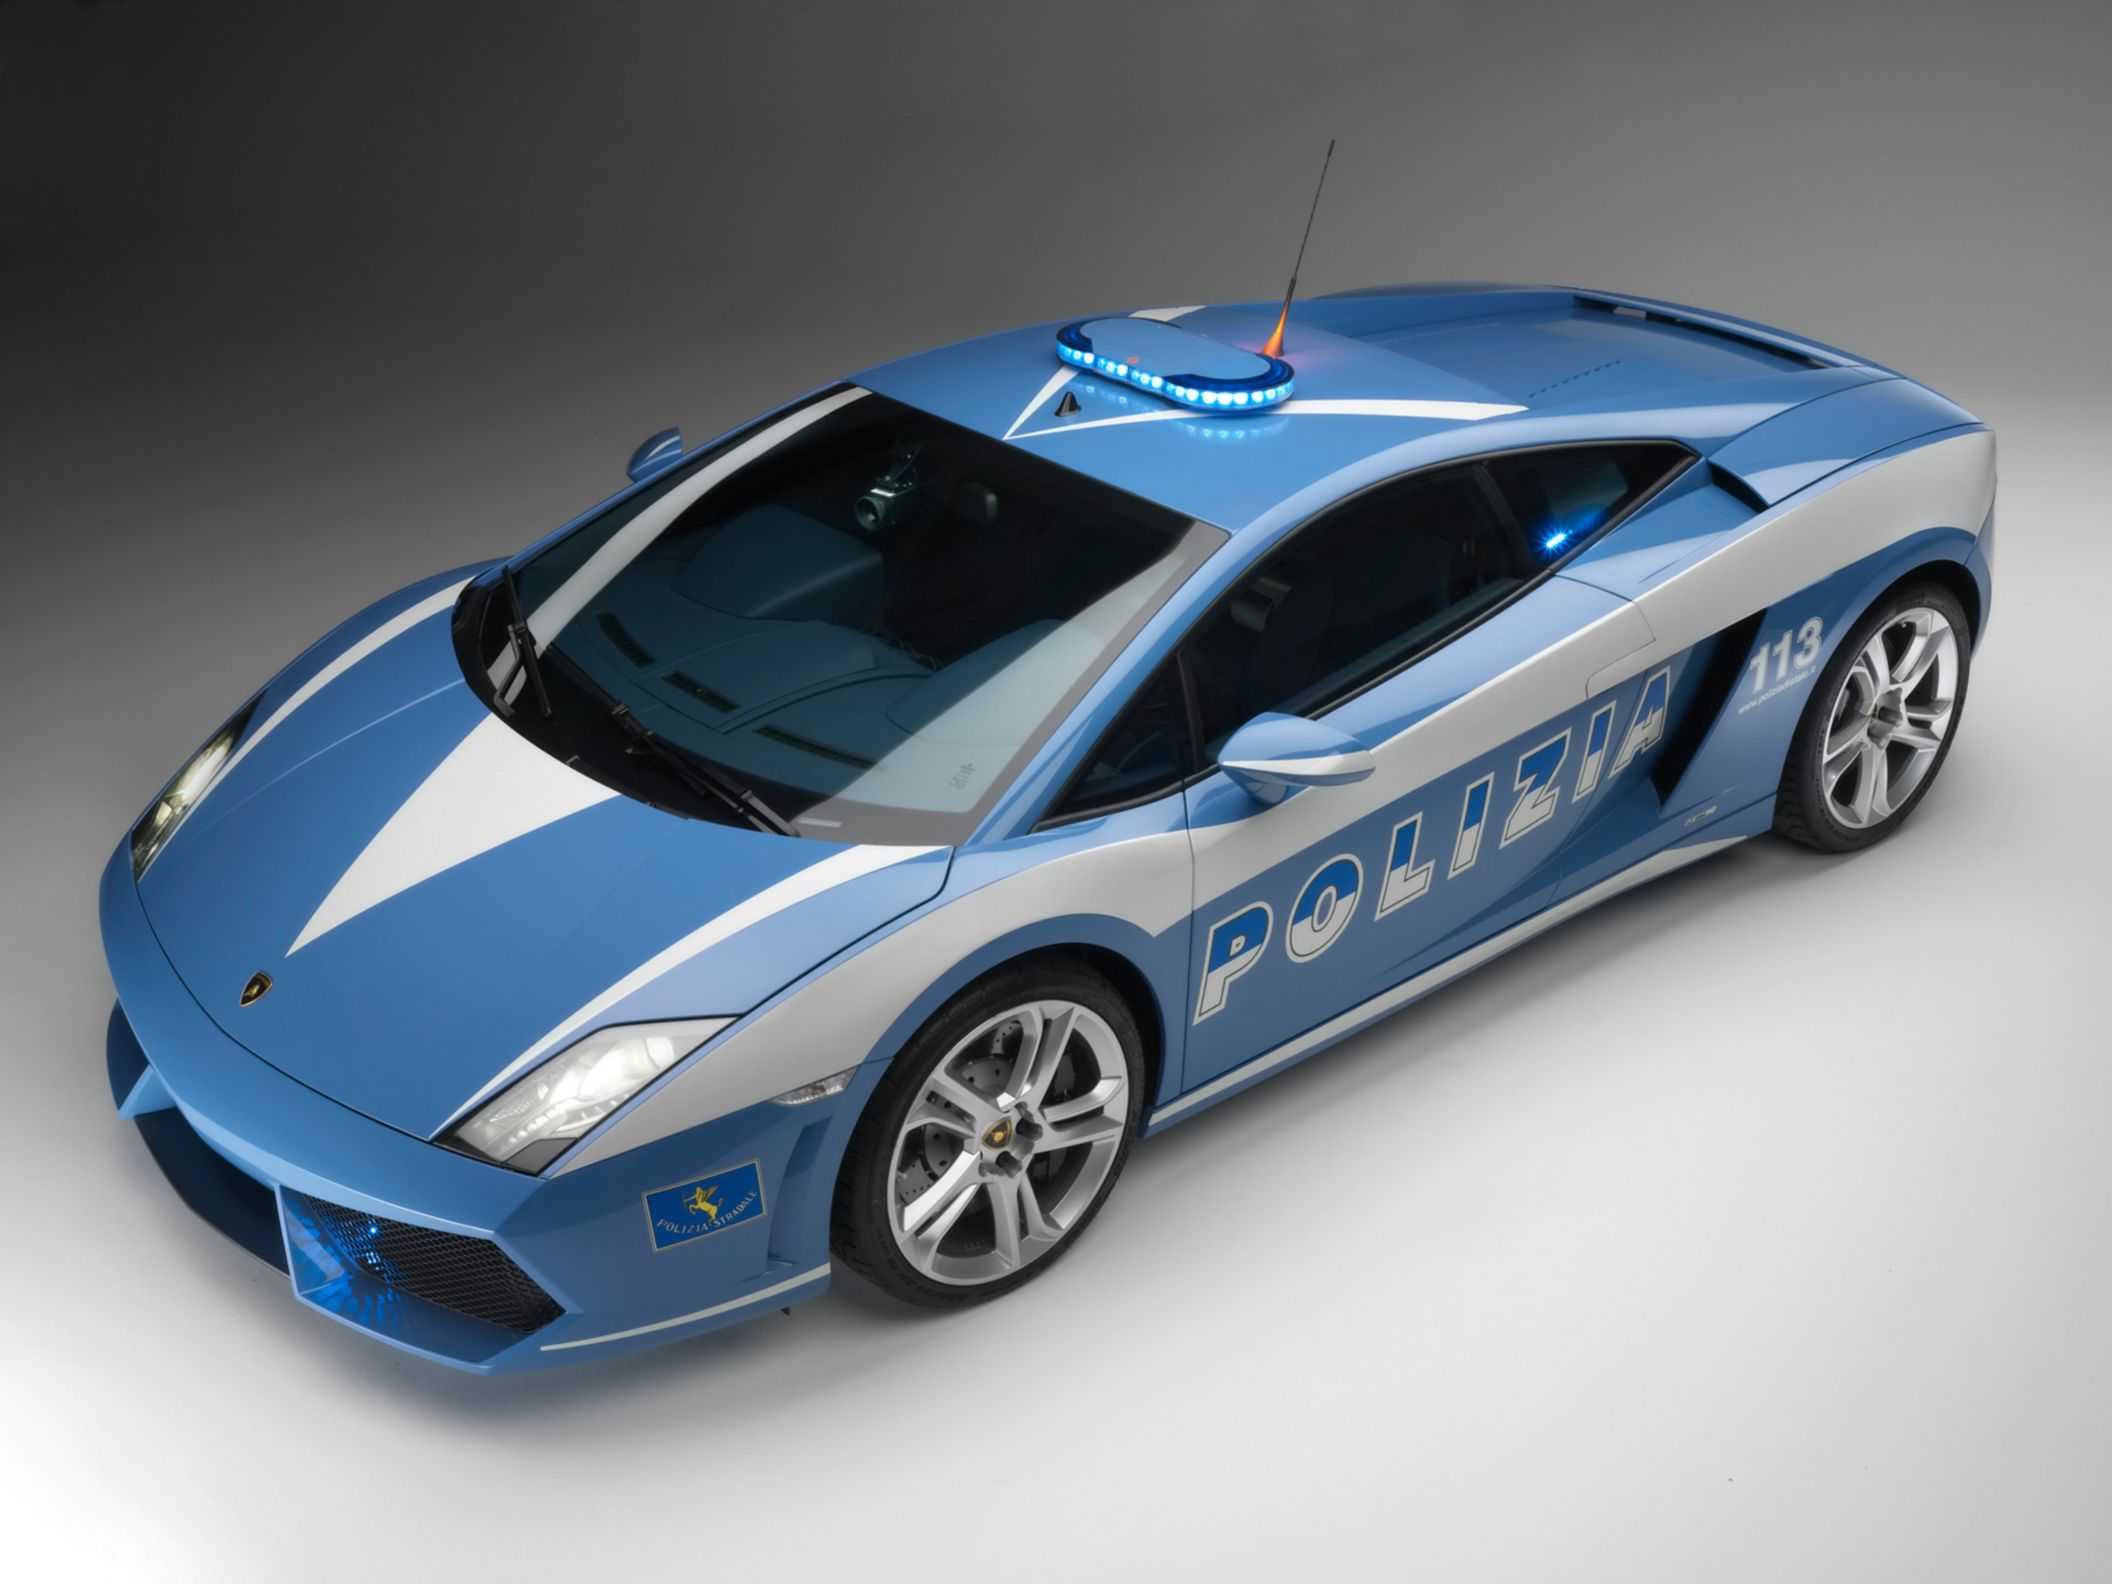 Download free HD Lamborghini Gallardo Polizia Normal Wallpaper, image